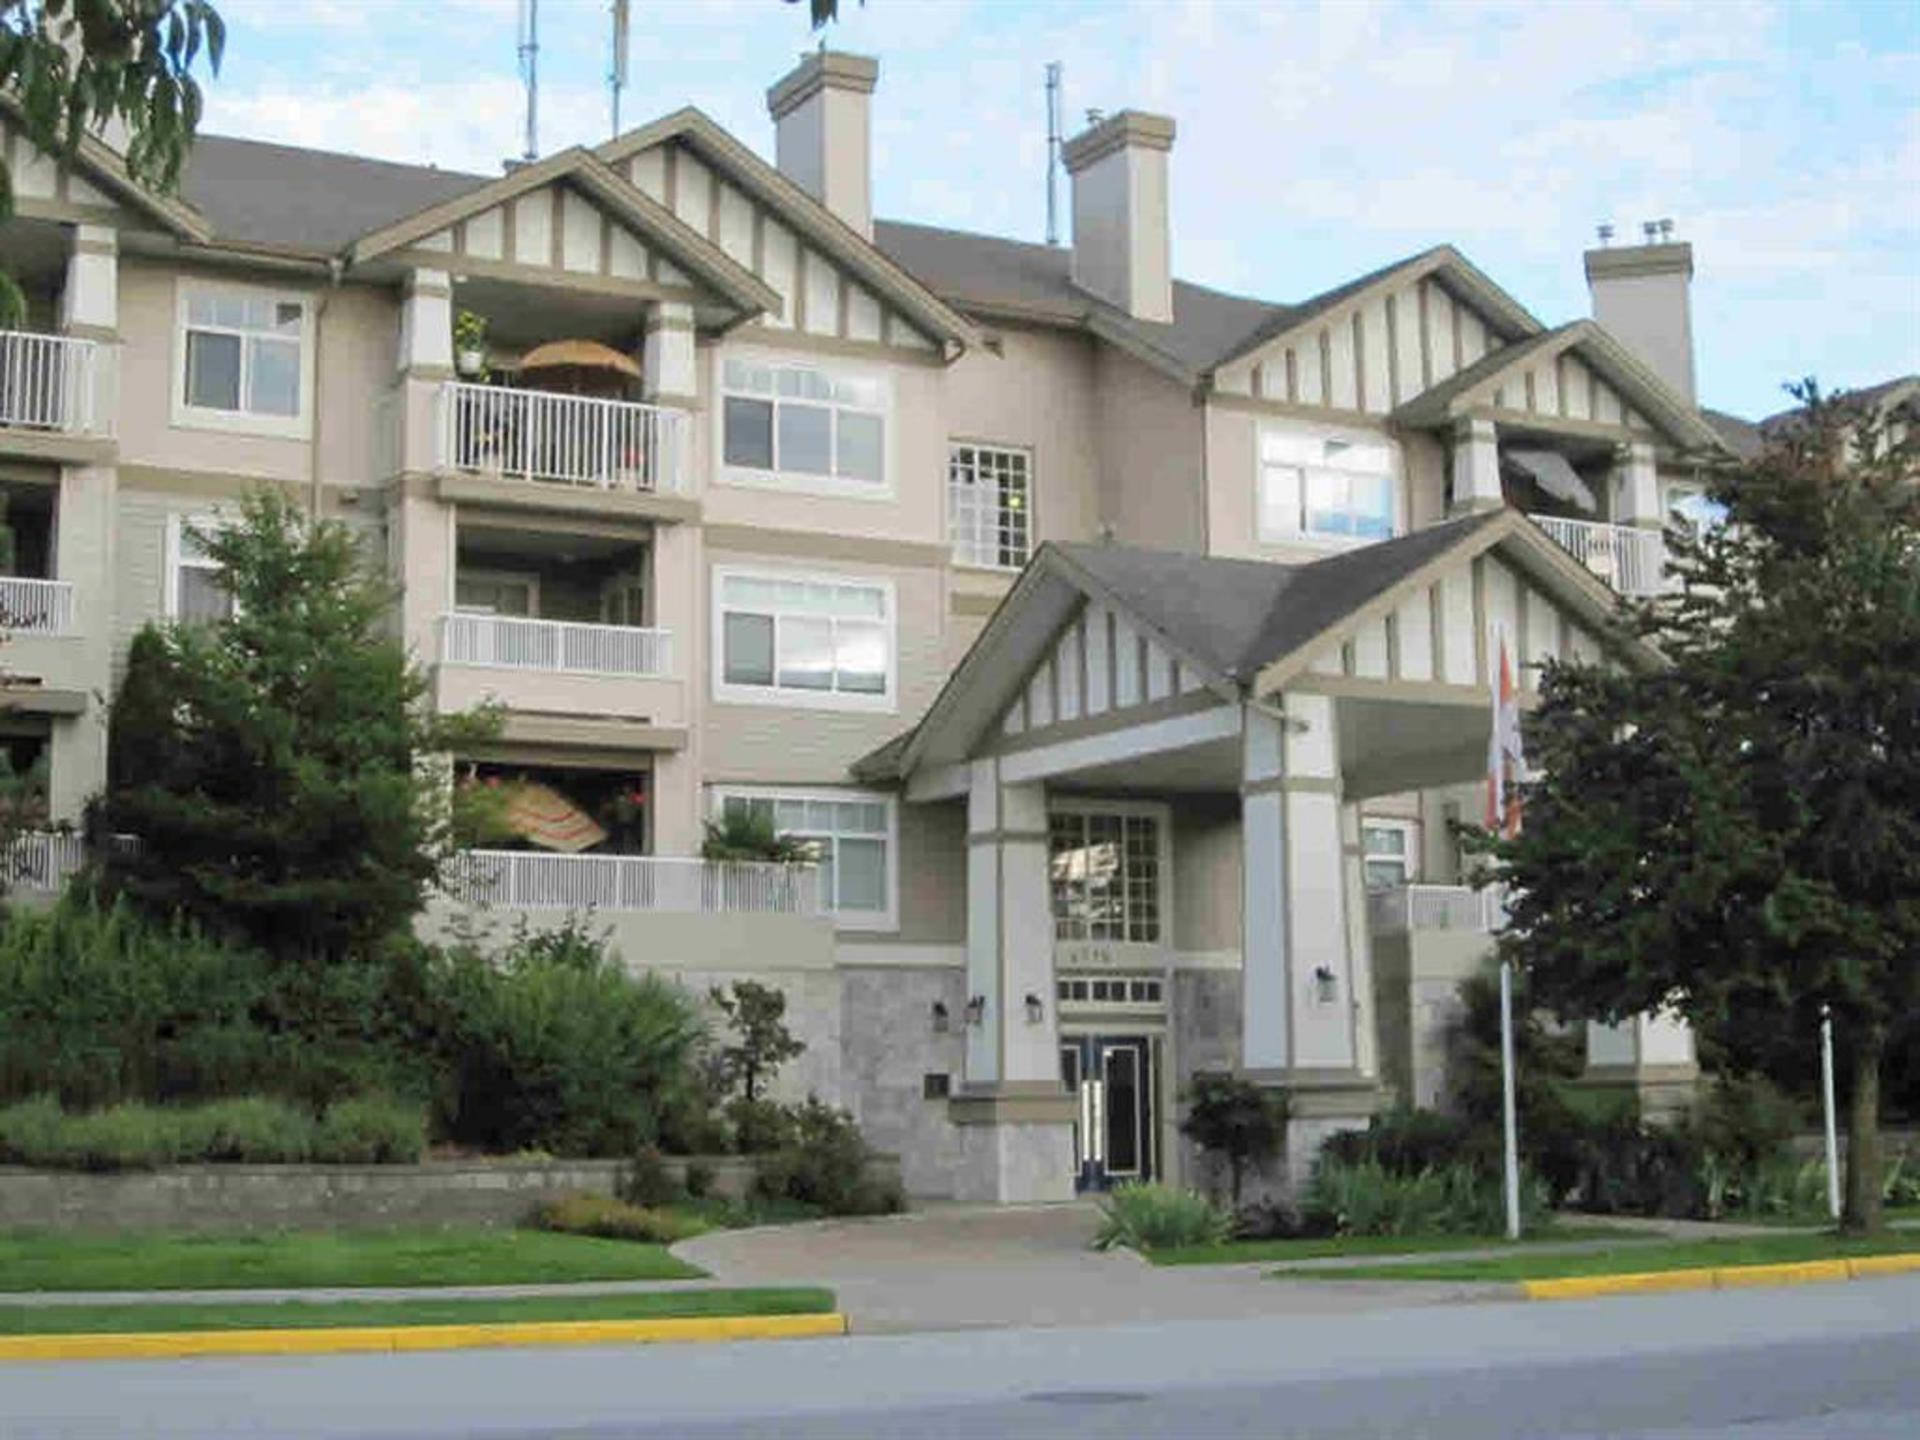 1 at 108 - 4770 52a Street, Delta Manor, Ladner